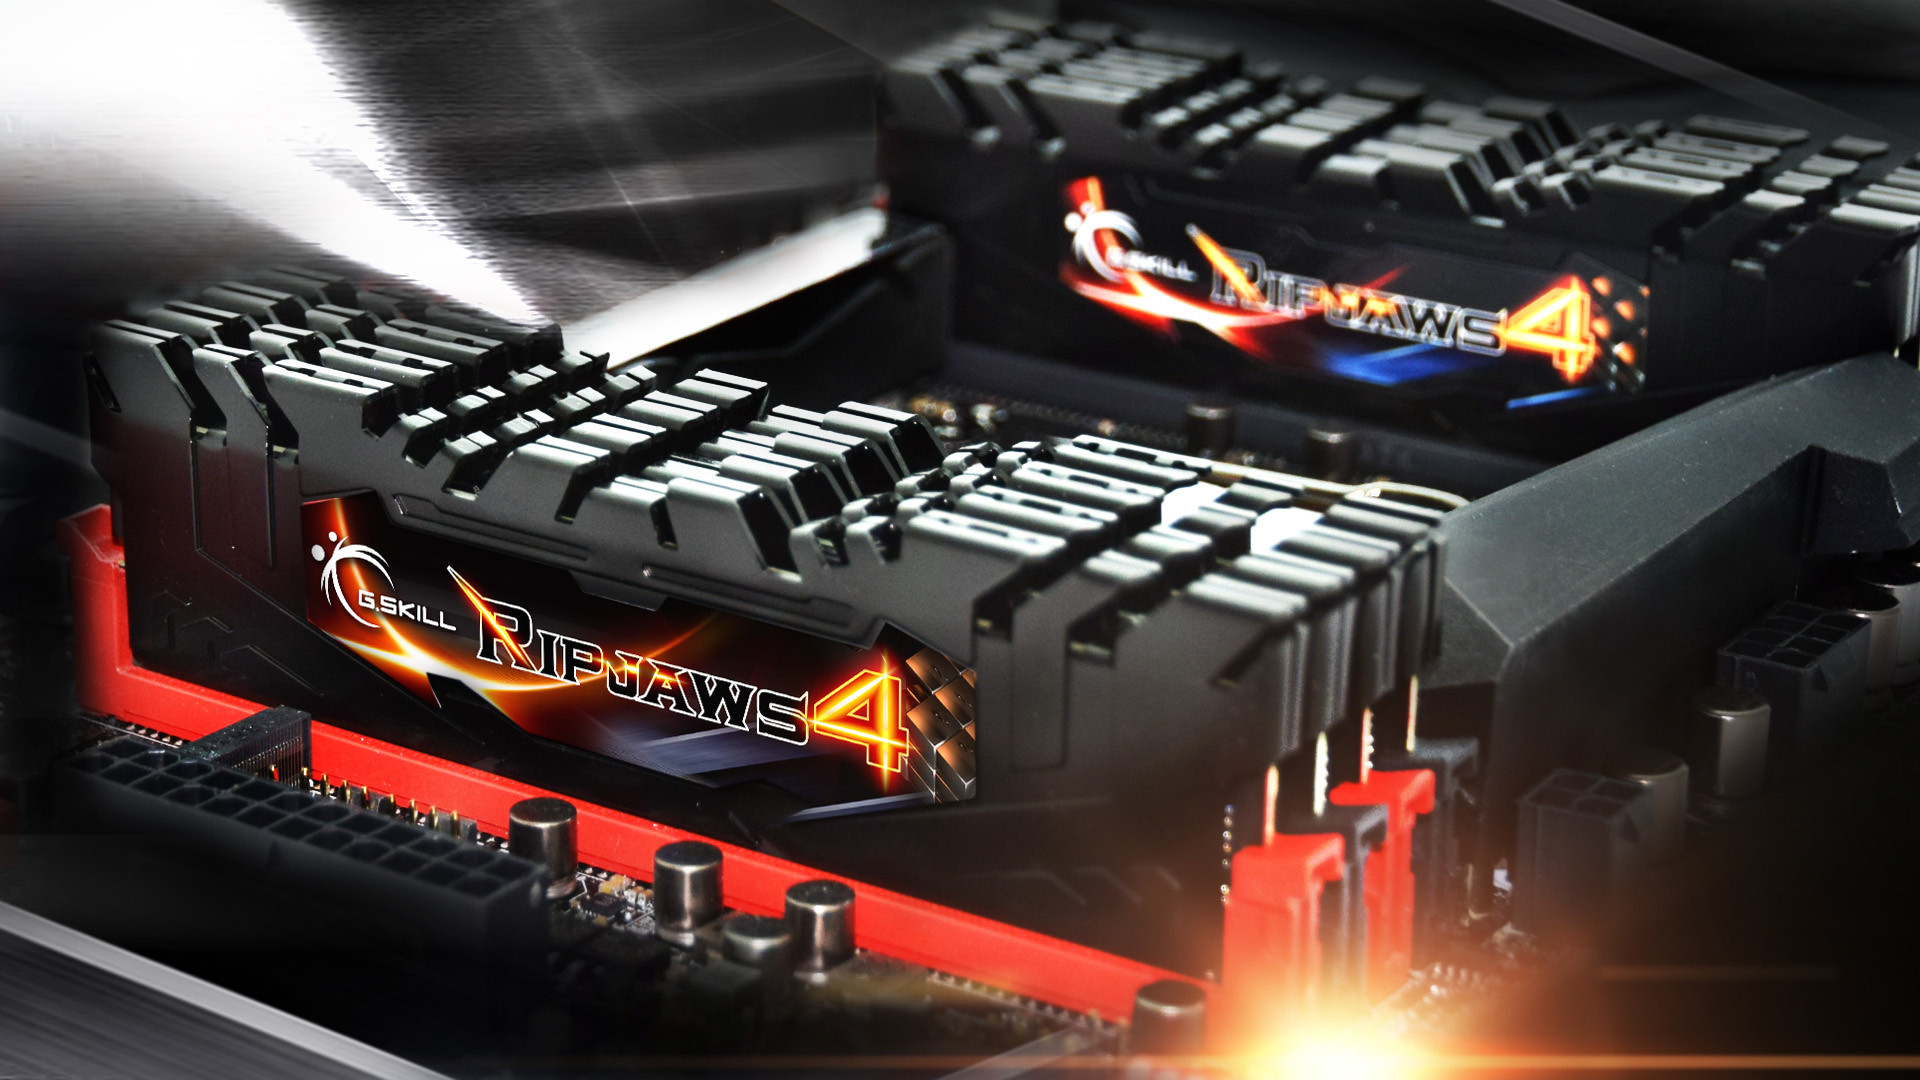 Kit RAM G.SKILL Ripjaws 4 DDR4 fino a 128GB 2800MHz